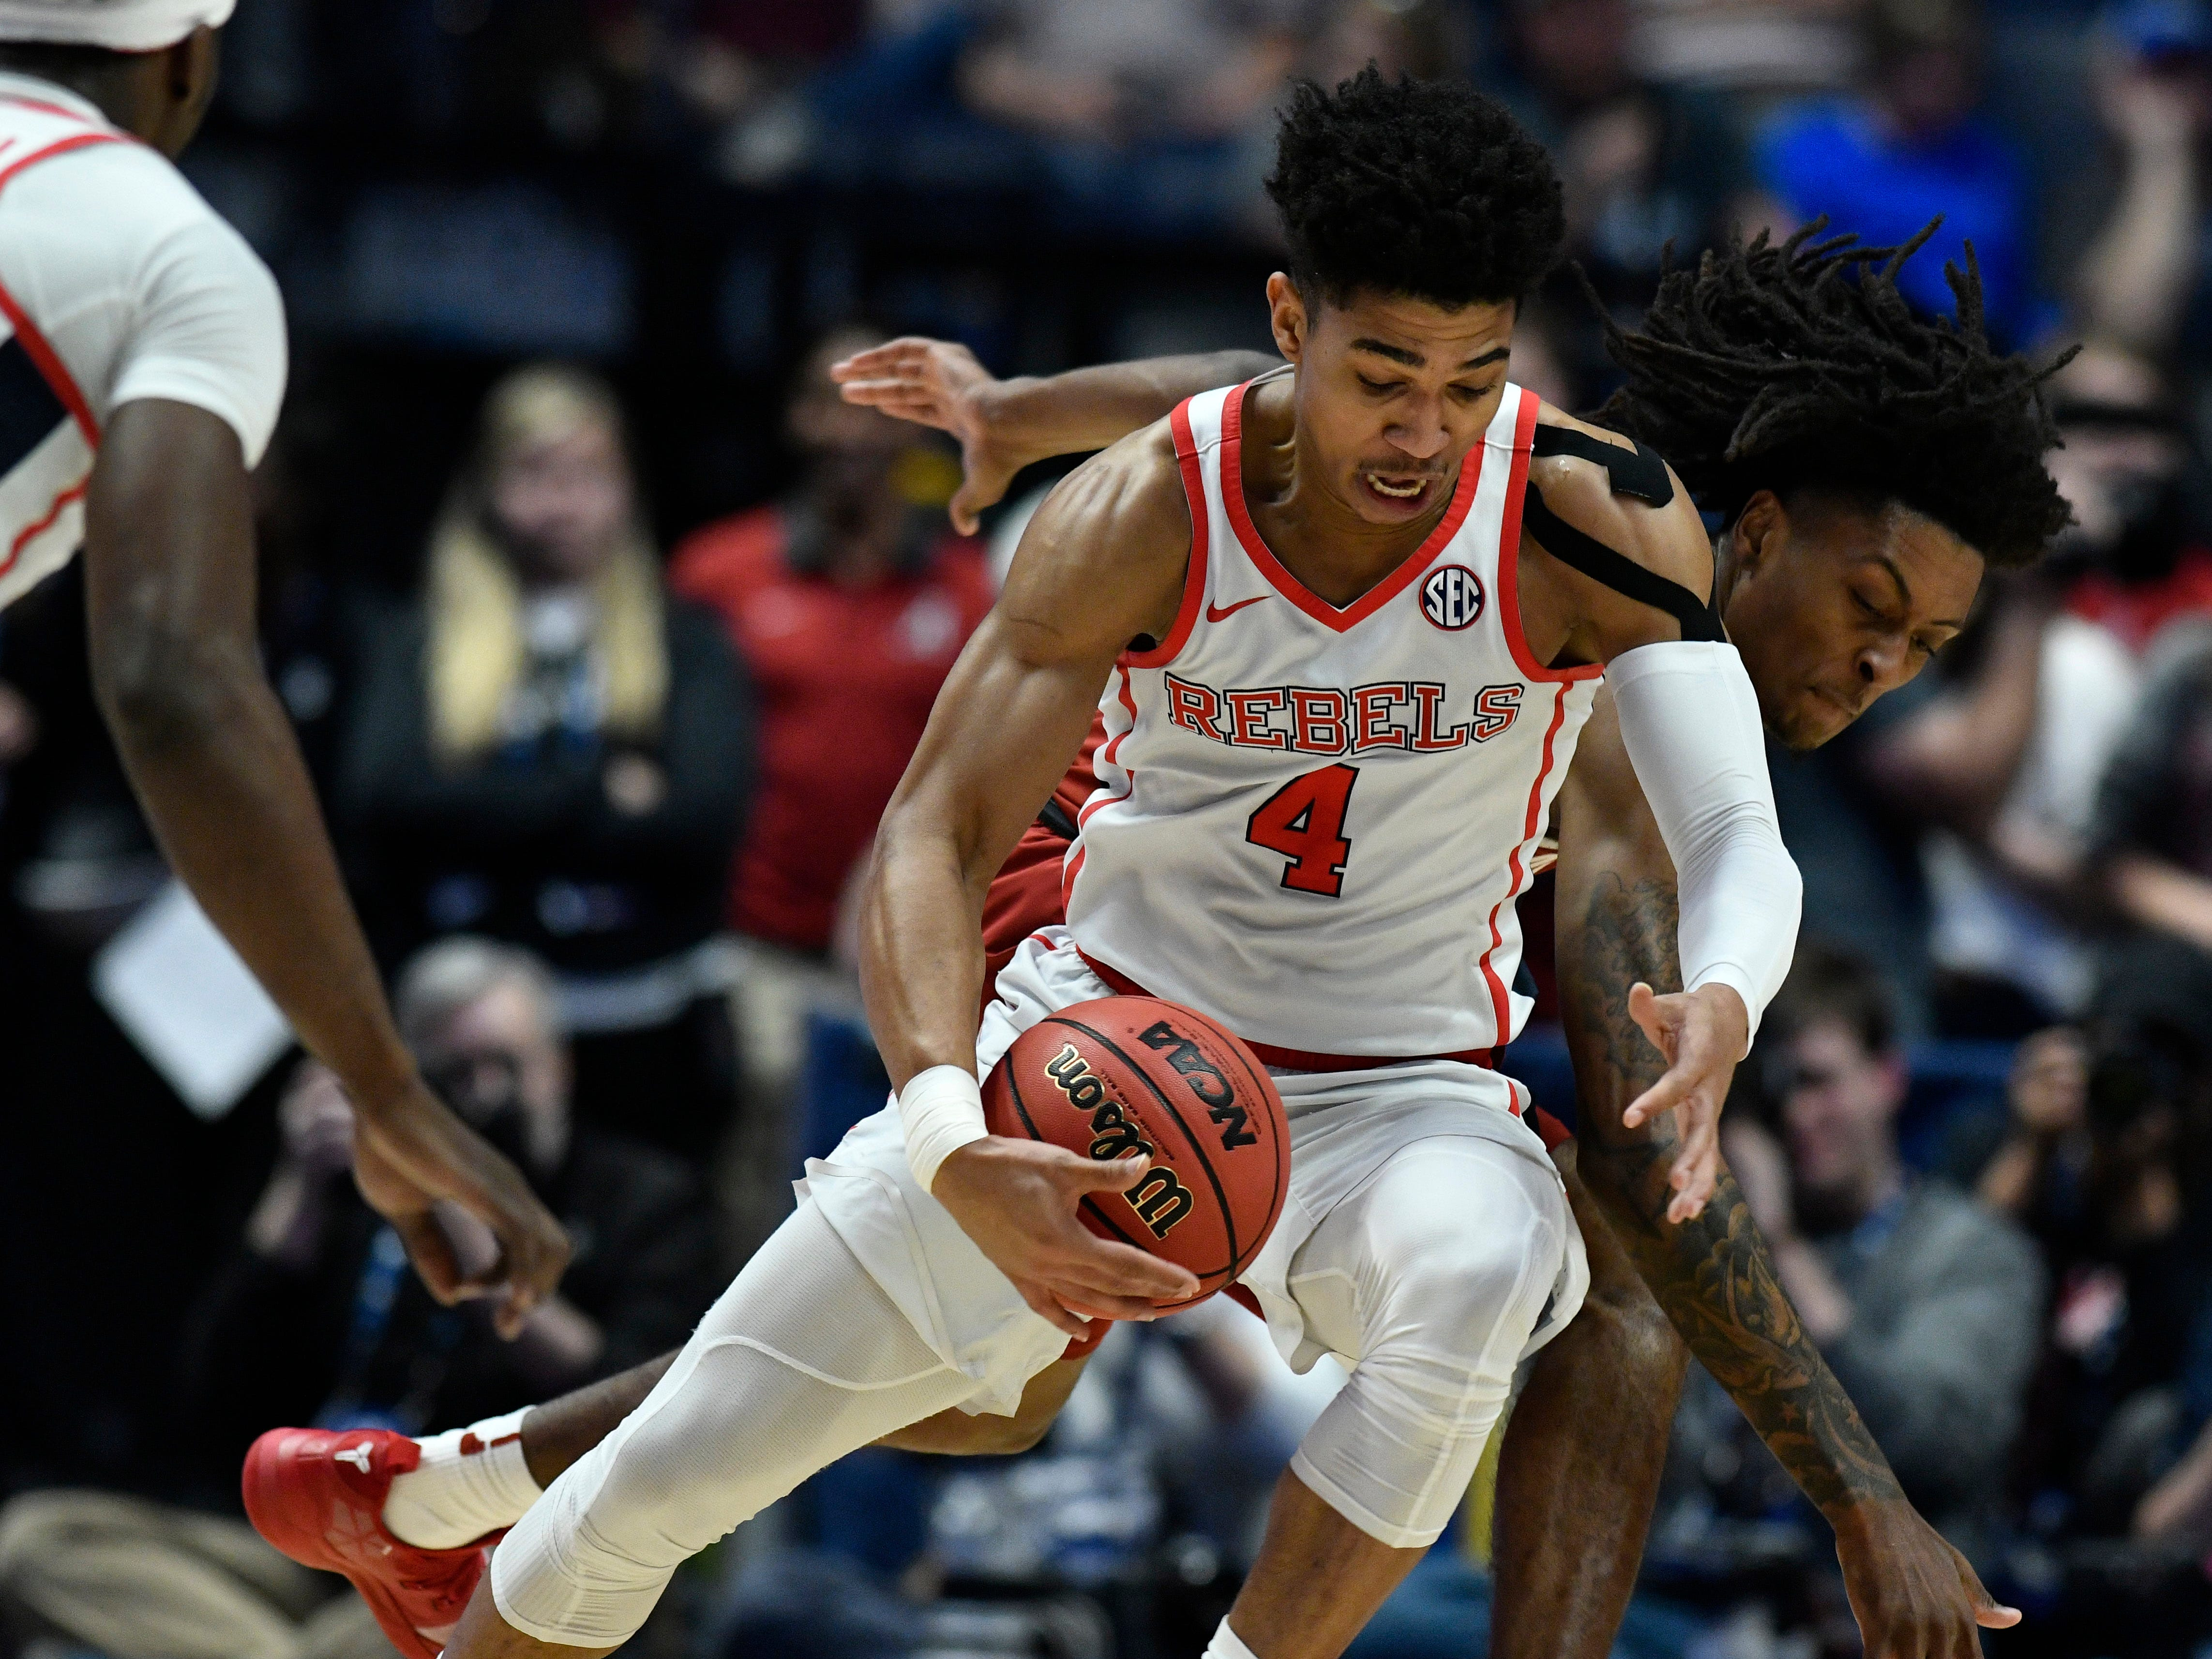 Ole Miss guard Breein Tyree (4) moves the ball defended by Alabama guard John Petty (23) during the first half of the SEC Men's Basketball Tournament game at Bridgestone Arena in Nashville, Tenn., Thursday, March 14, 2019.